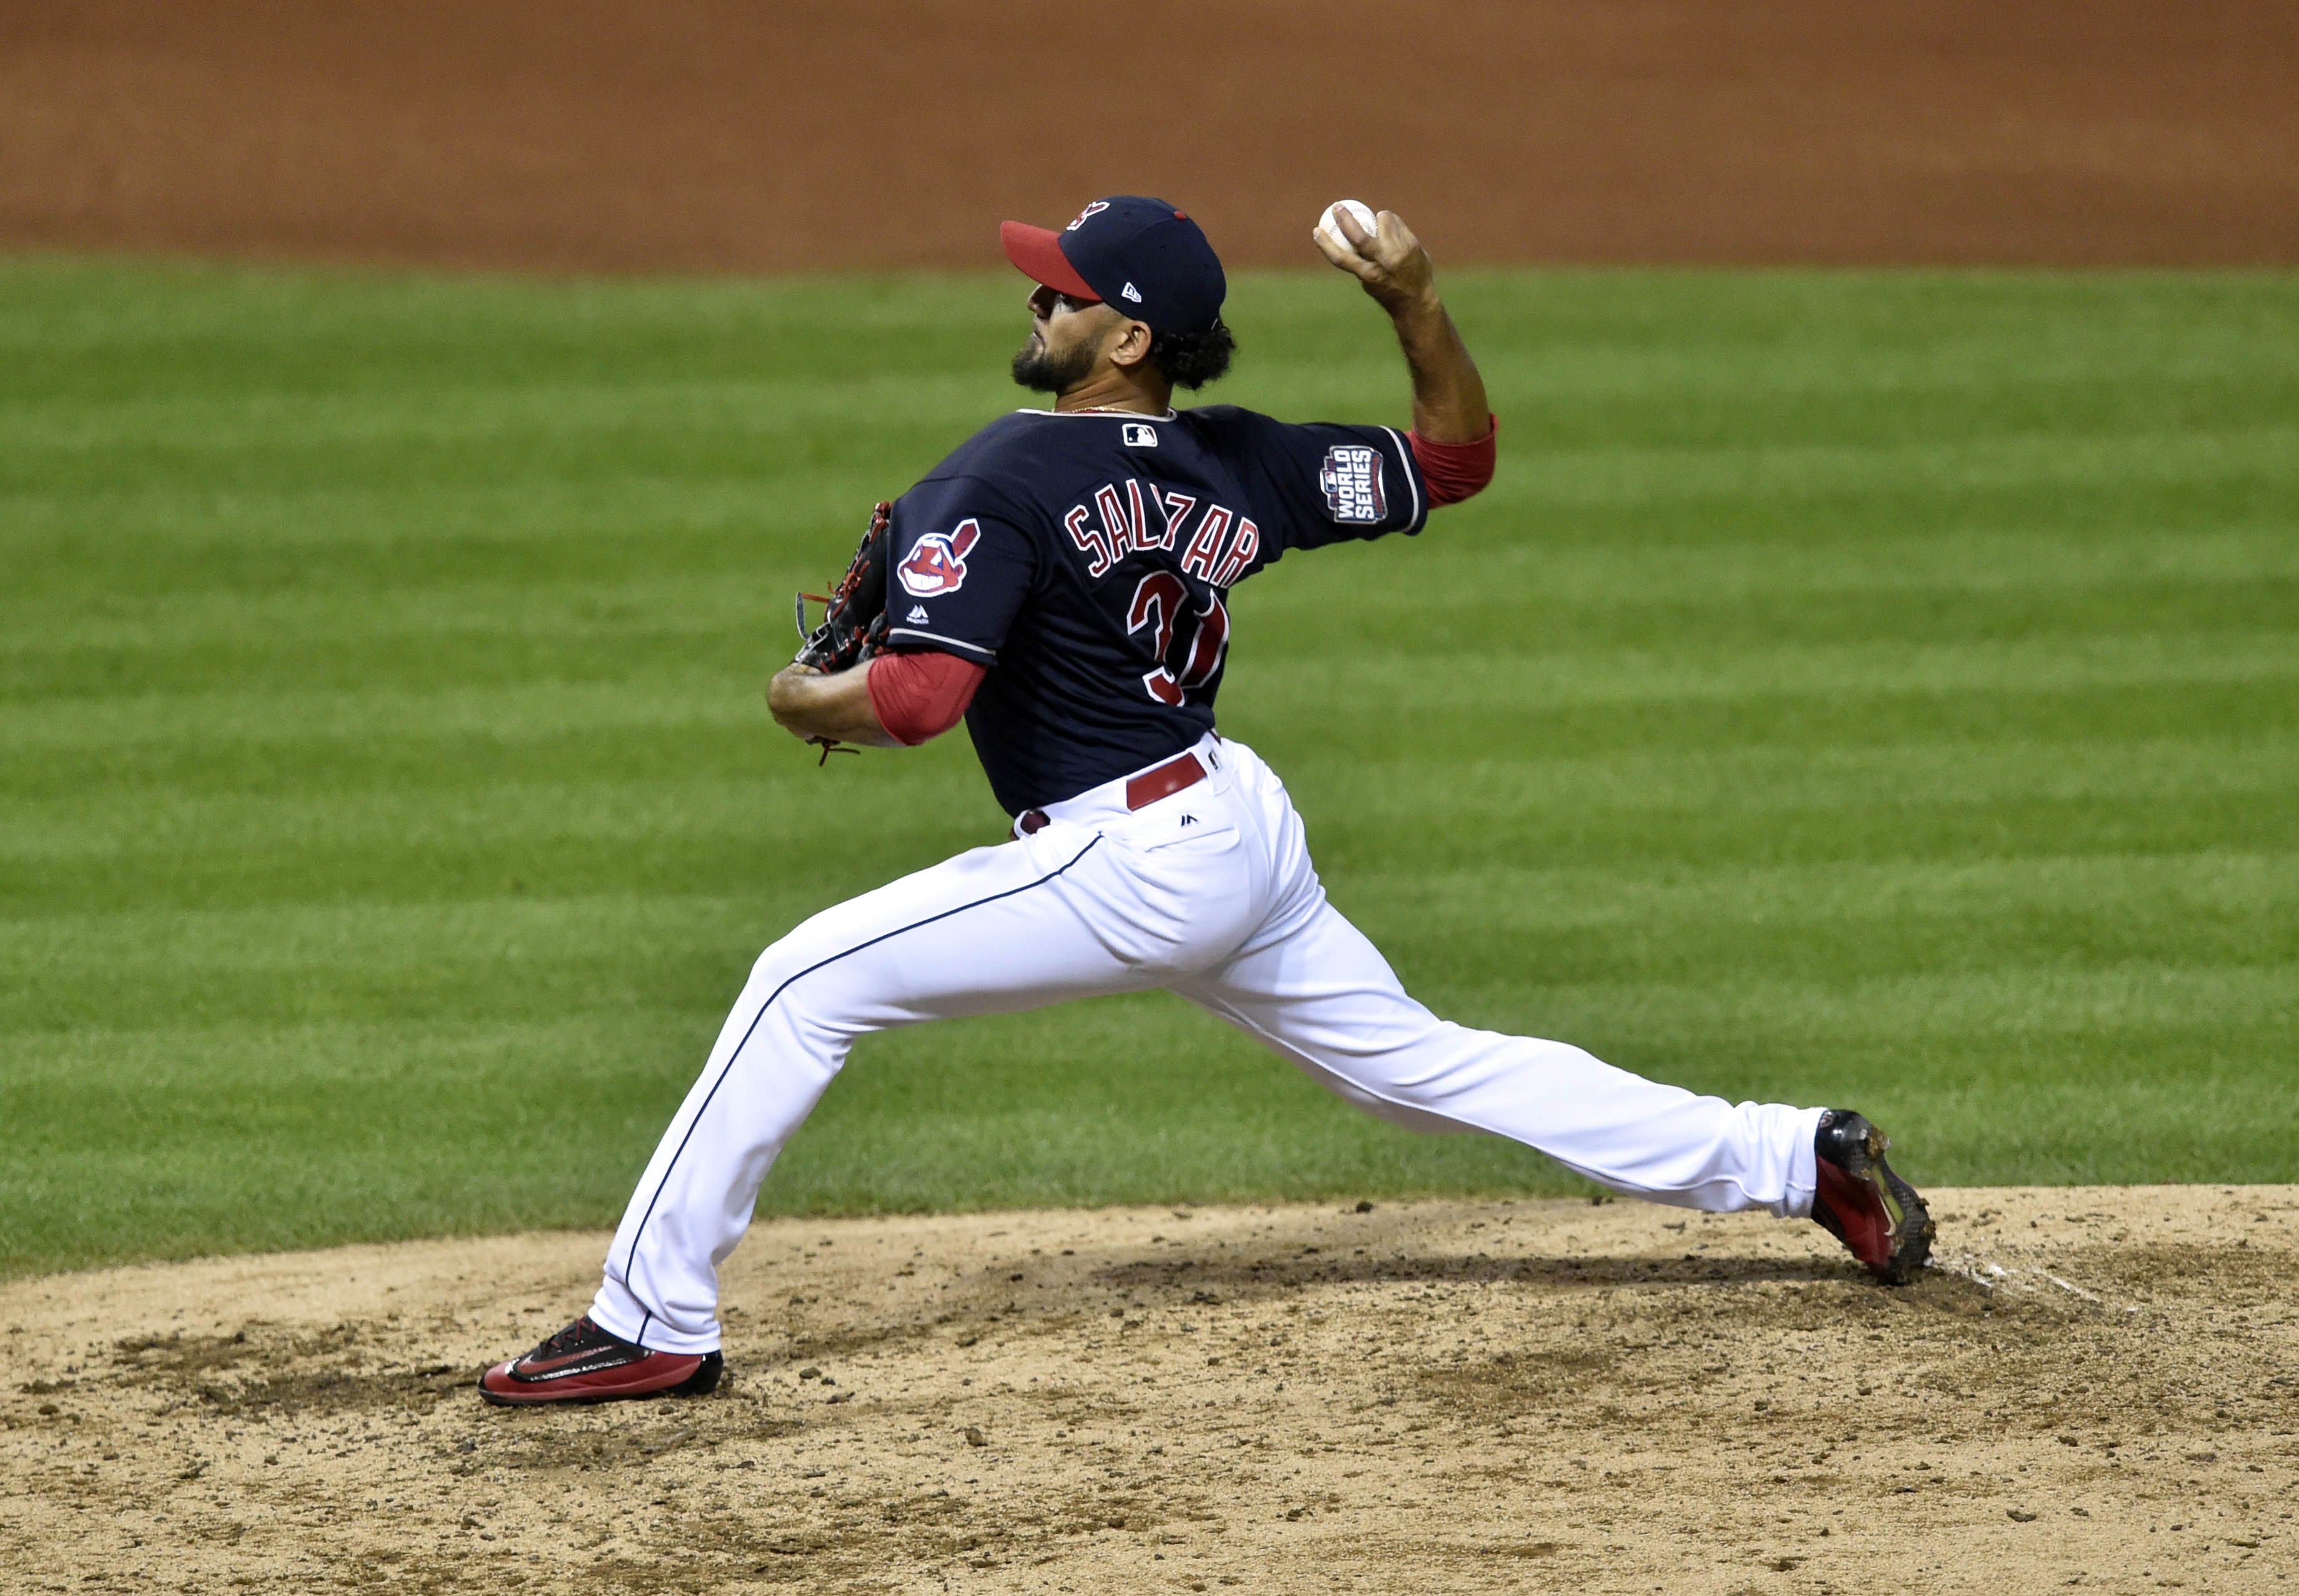 9648415-mlb-world-series-chicago-cubs-at-cleveland-indians